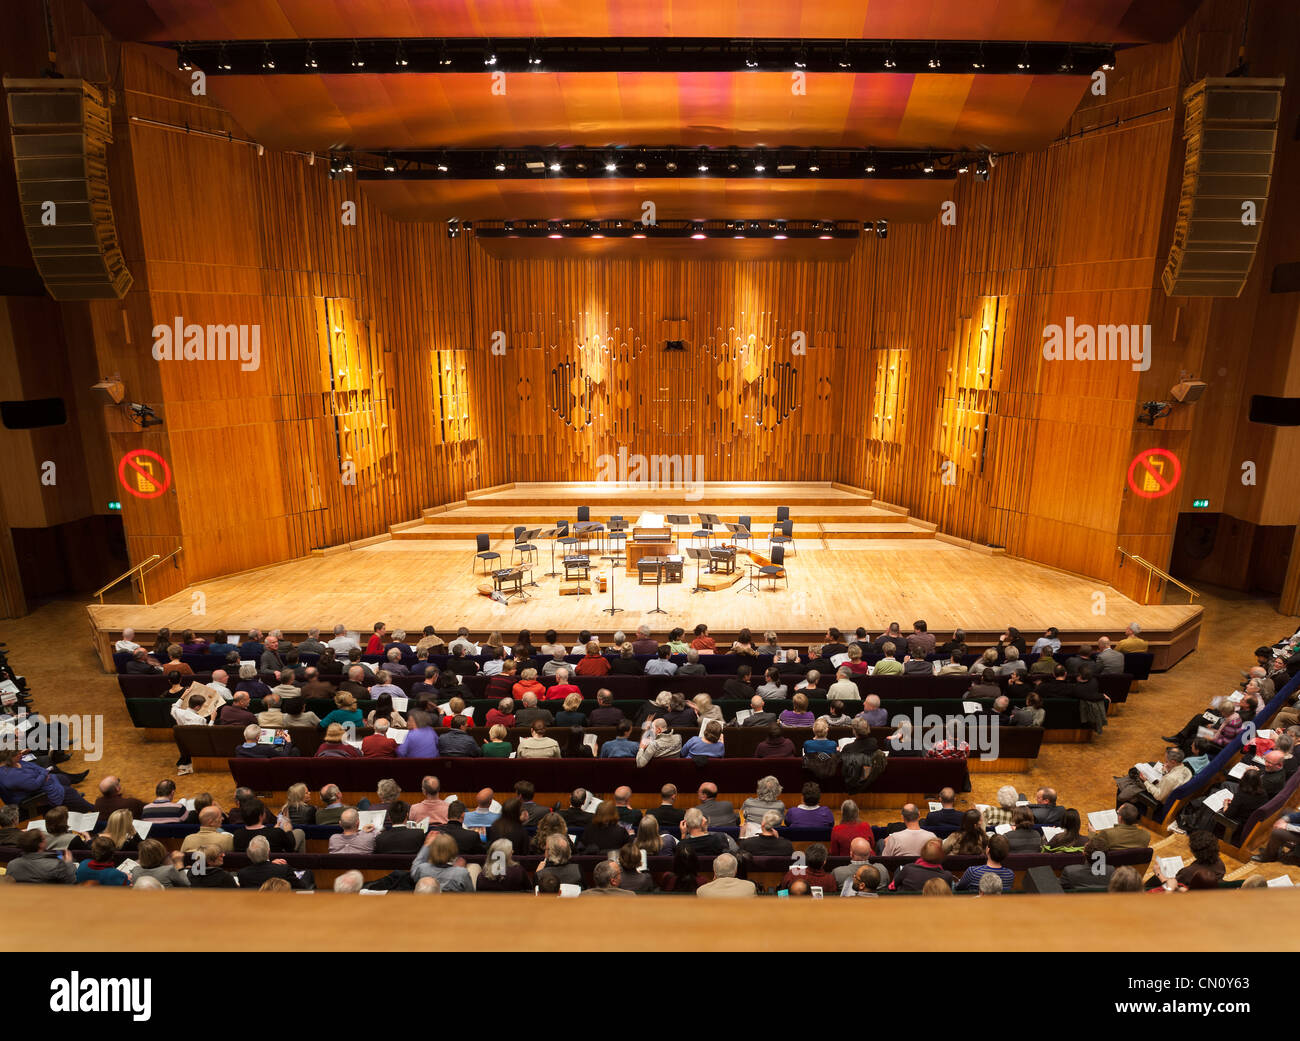 Empty music stage of the Barbican Centre Concert Hall Theatre Theater Auditorium London. With audience public visitors Stock Photo